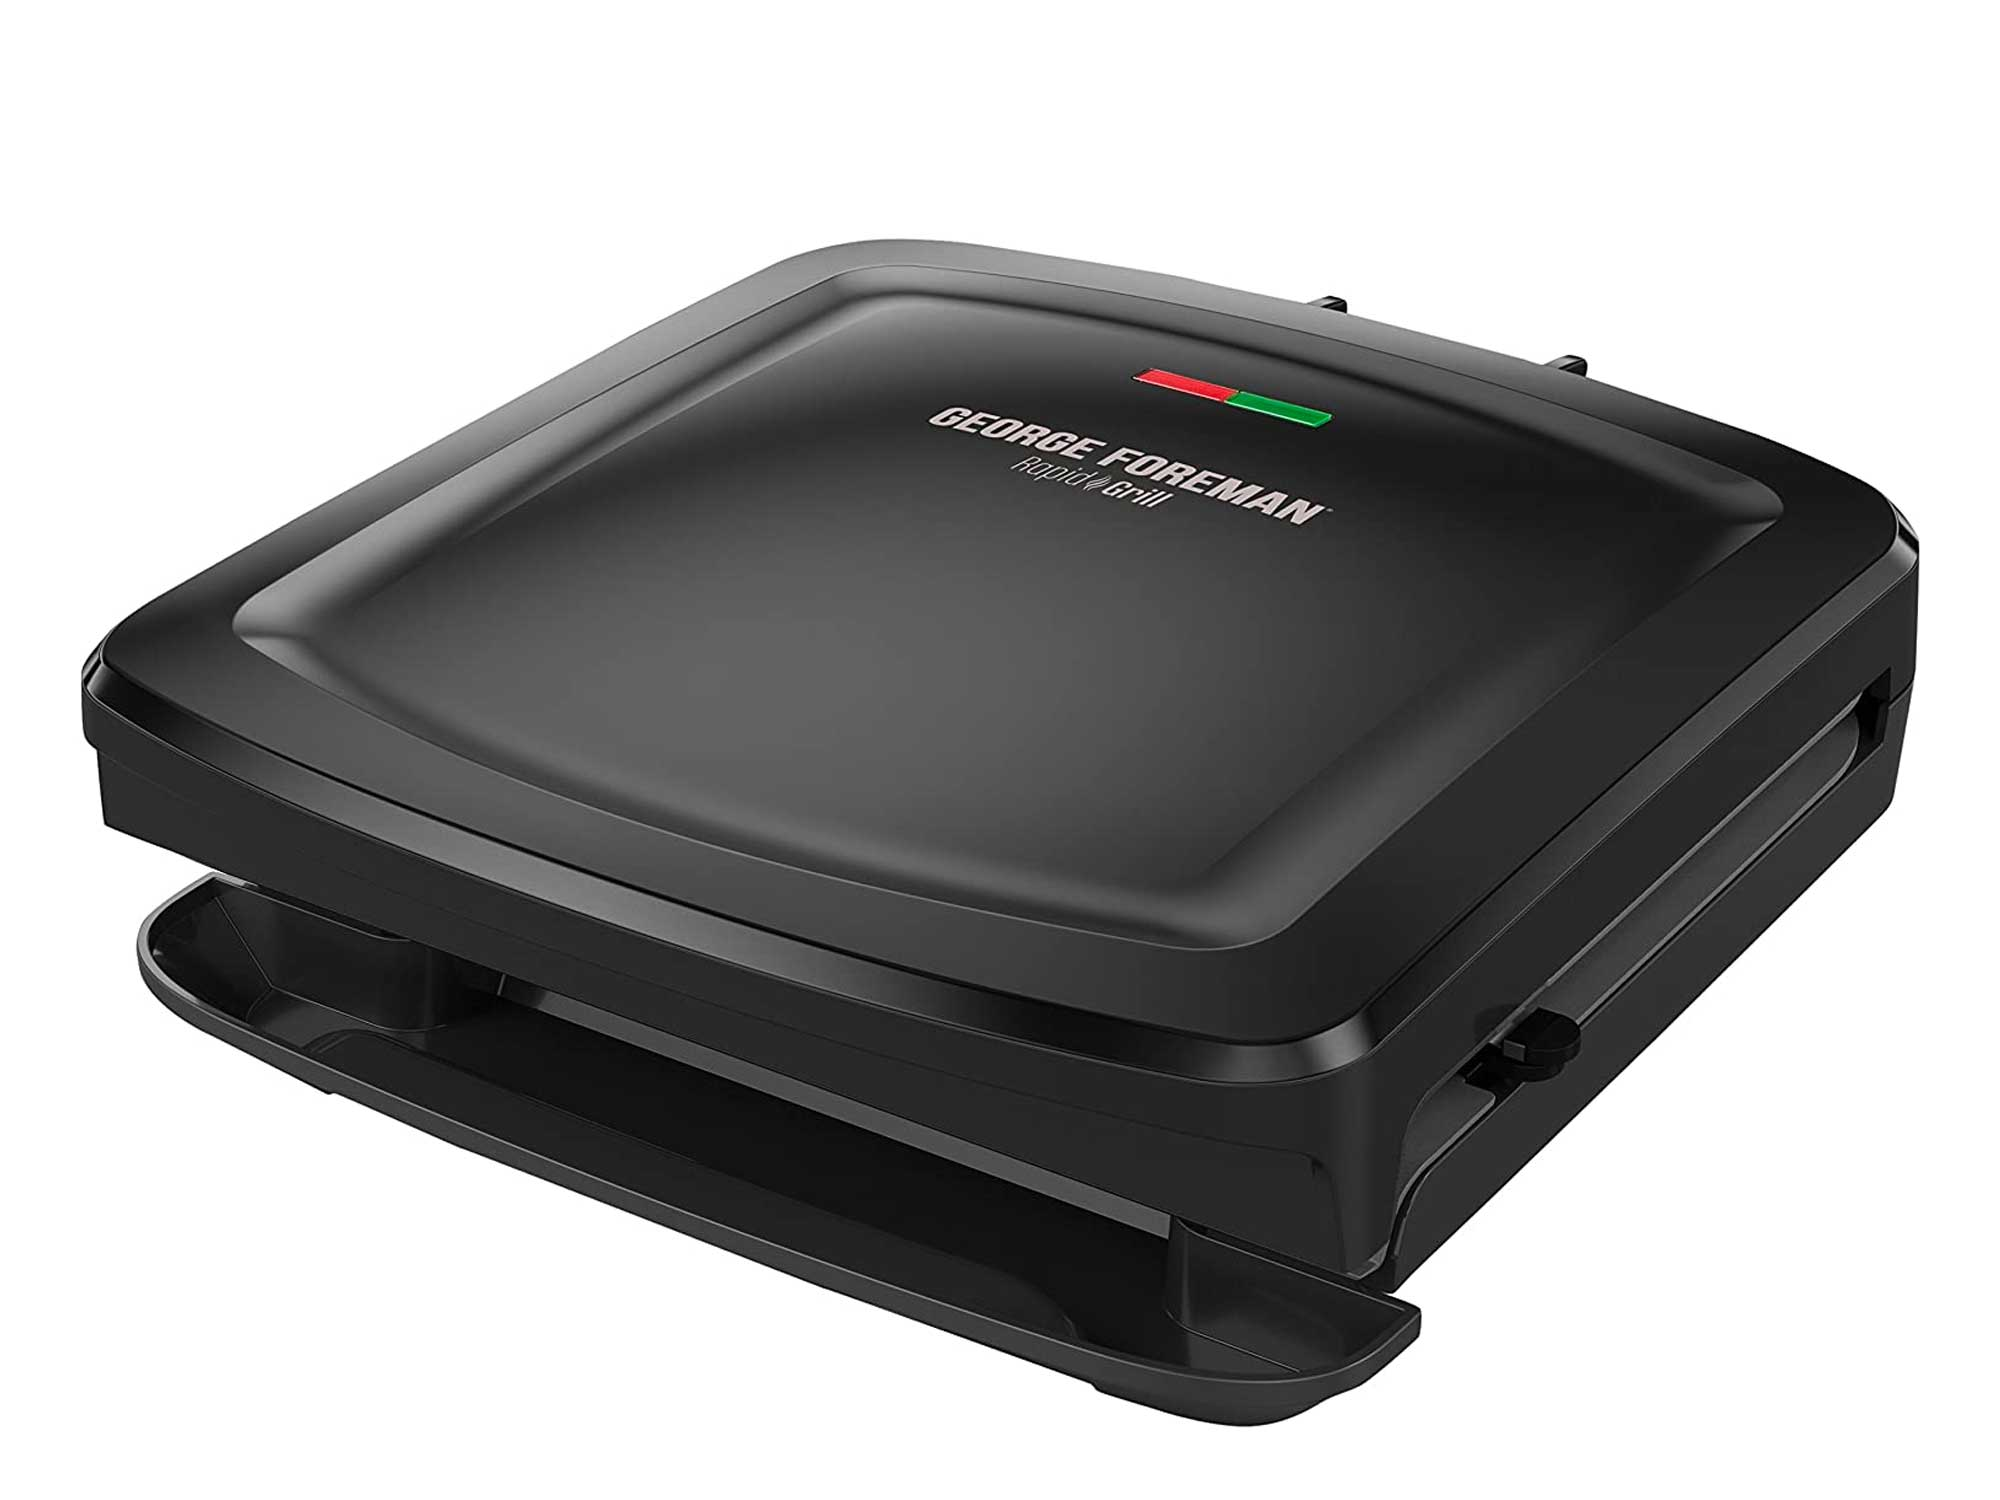 George Foreman Rapid Grill Series, 4-Serving Removable Plate Electric Indoor Grill and Panini Press, Black